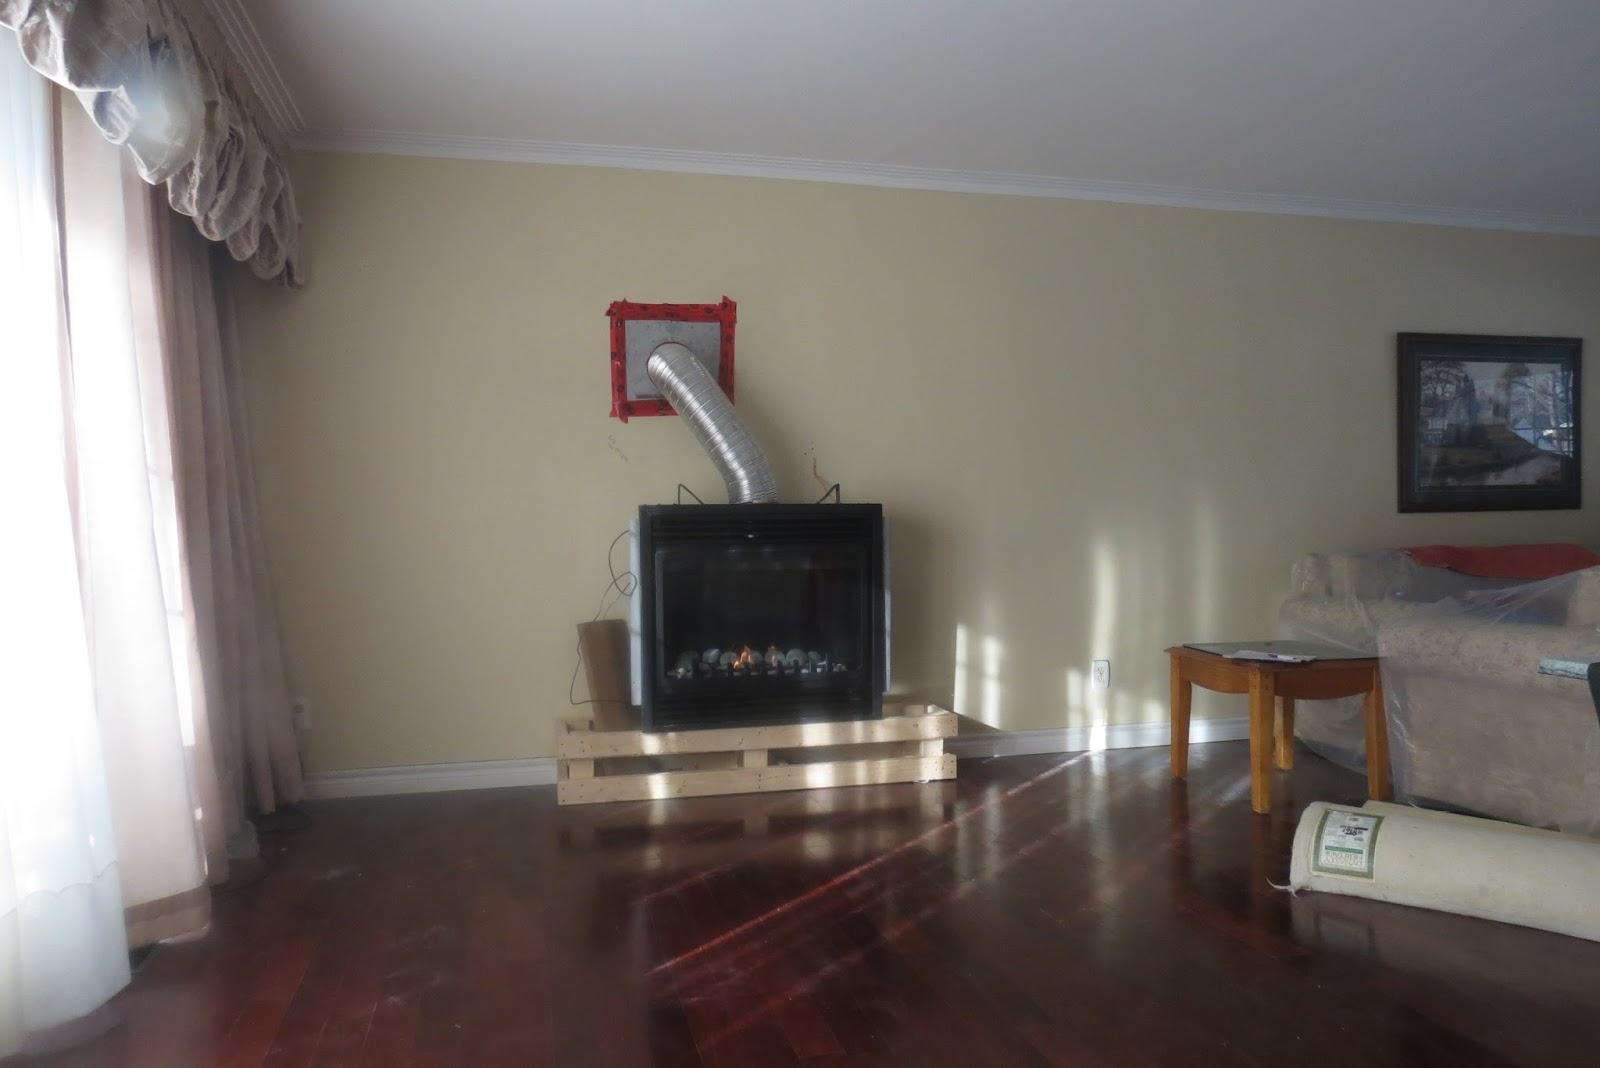 We Did Not Want The Fireplace Sitting On The Floor, So A Platform Was Built